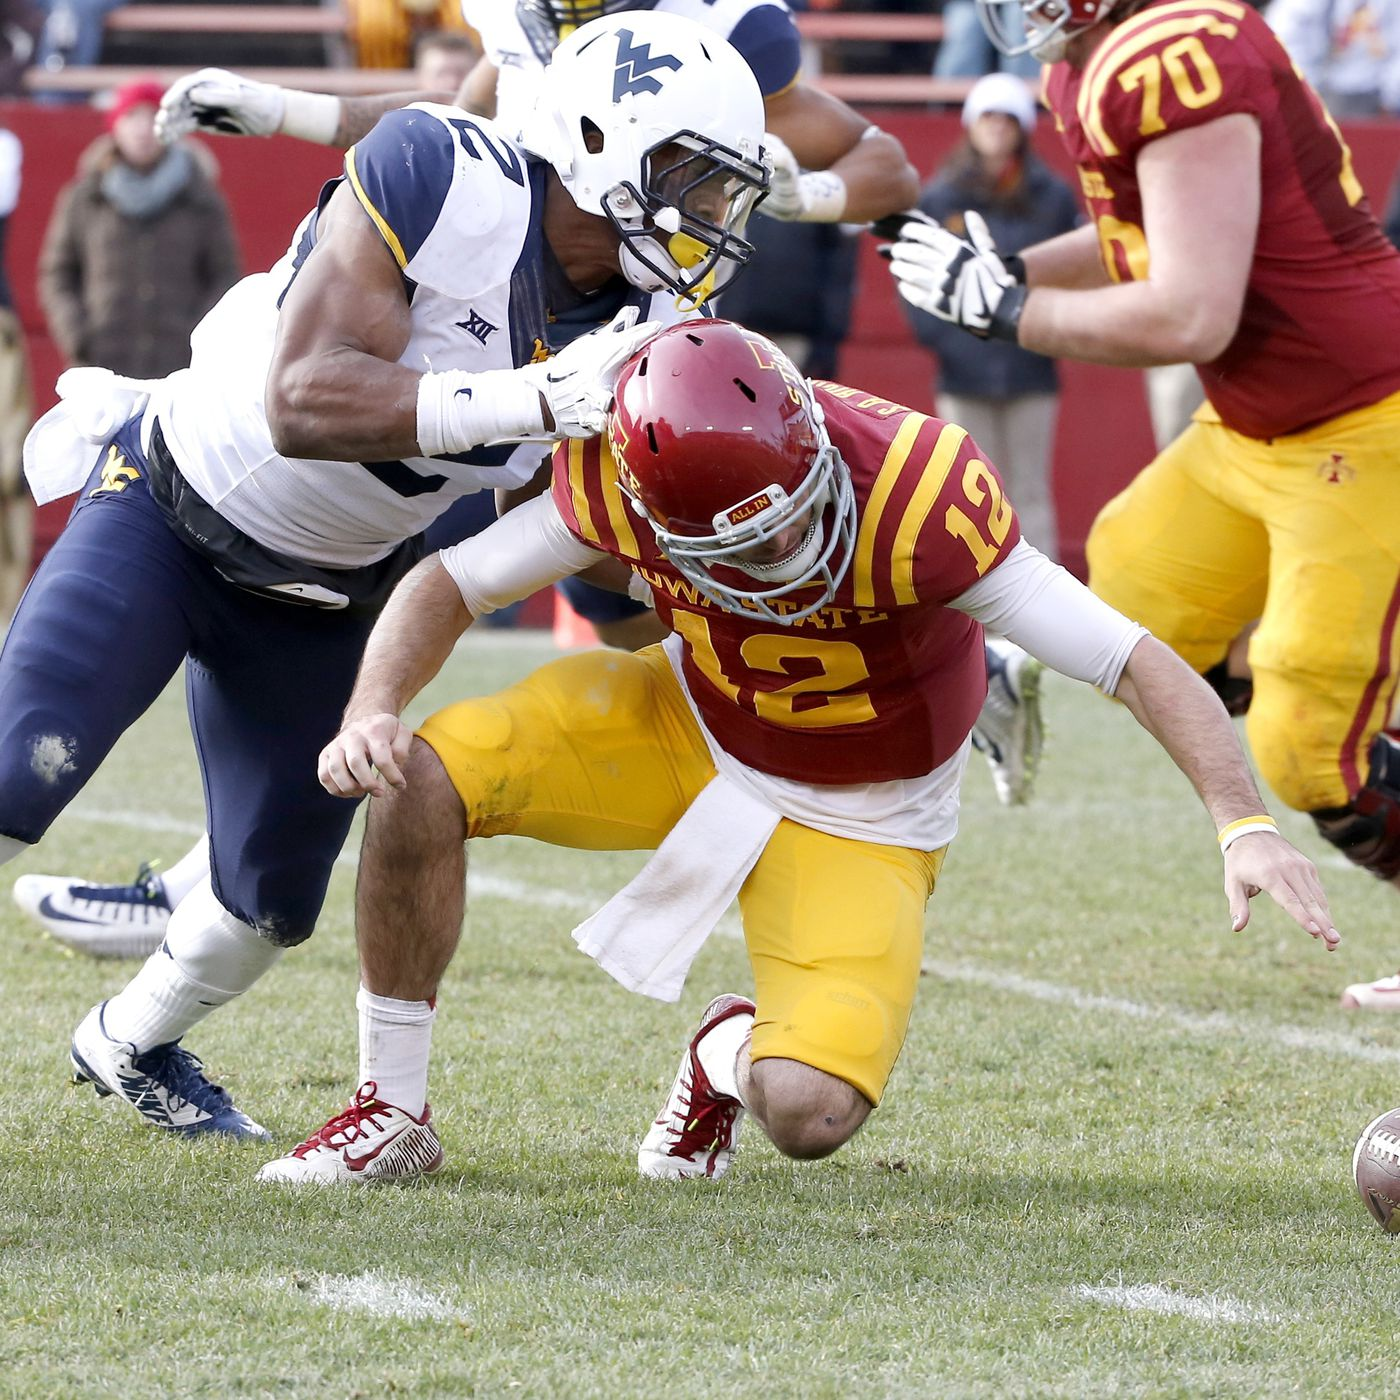 2015 Iowa State Football  Five Reasons for Pessimism - Wide Right ... 27b714390